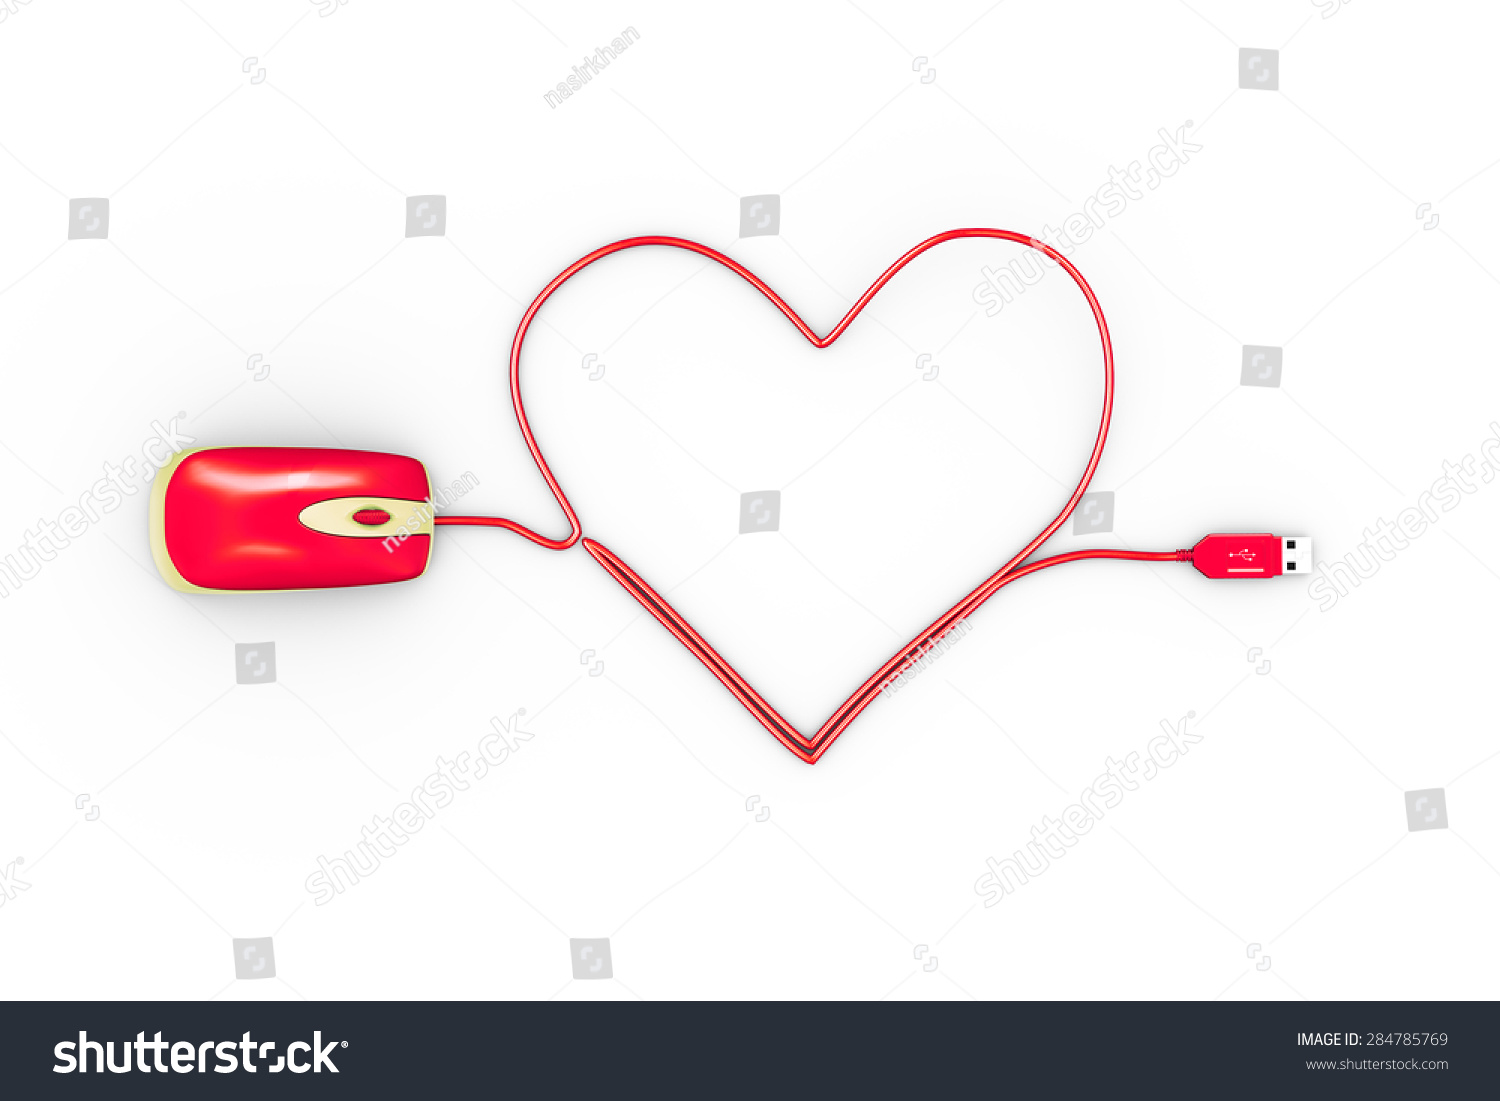 Mouse Cable Wire Diagram Electrical Wiring Diagrams Computer 3 D Rendering Heart Shape Made Stock Illustration 284785769 Basic